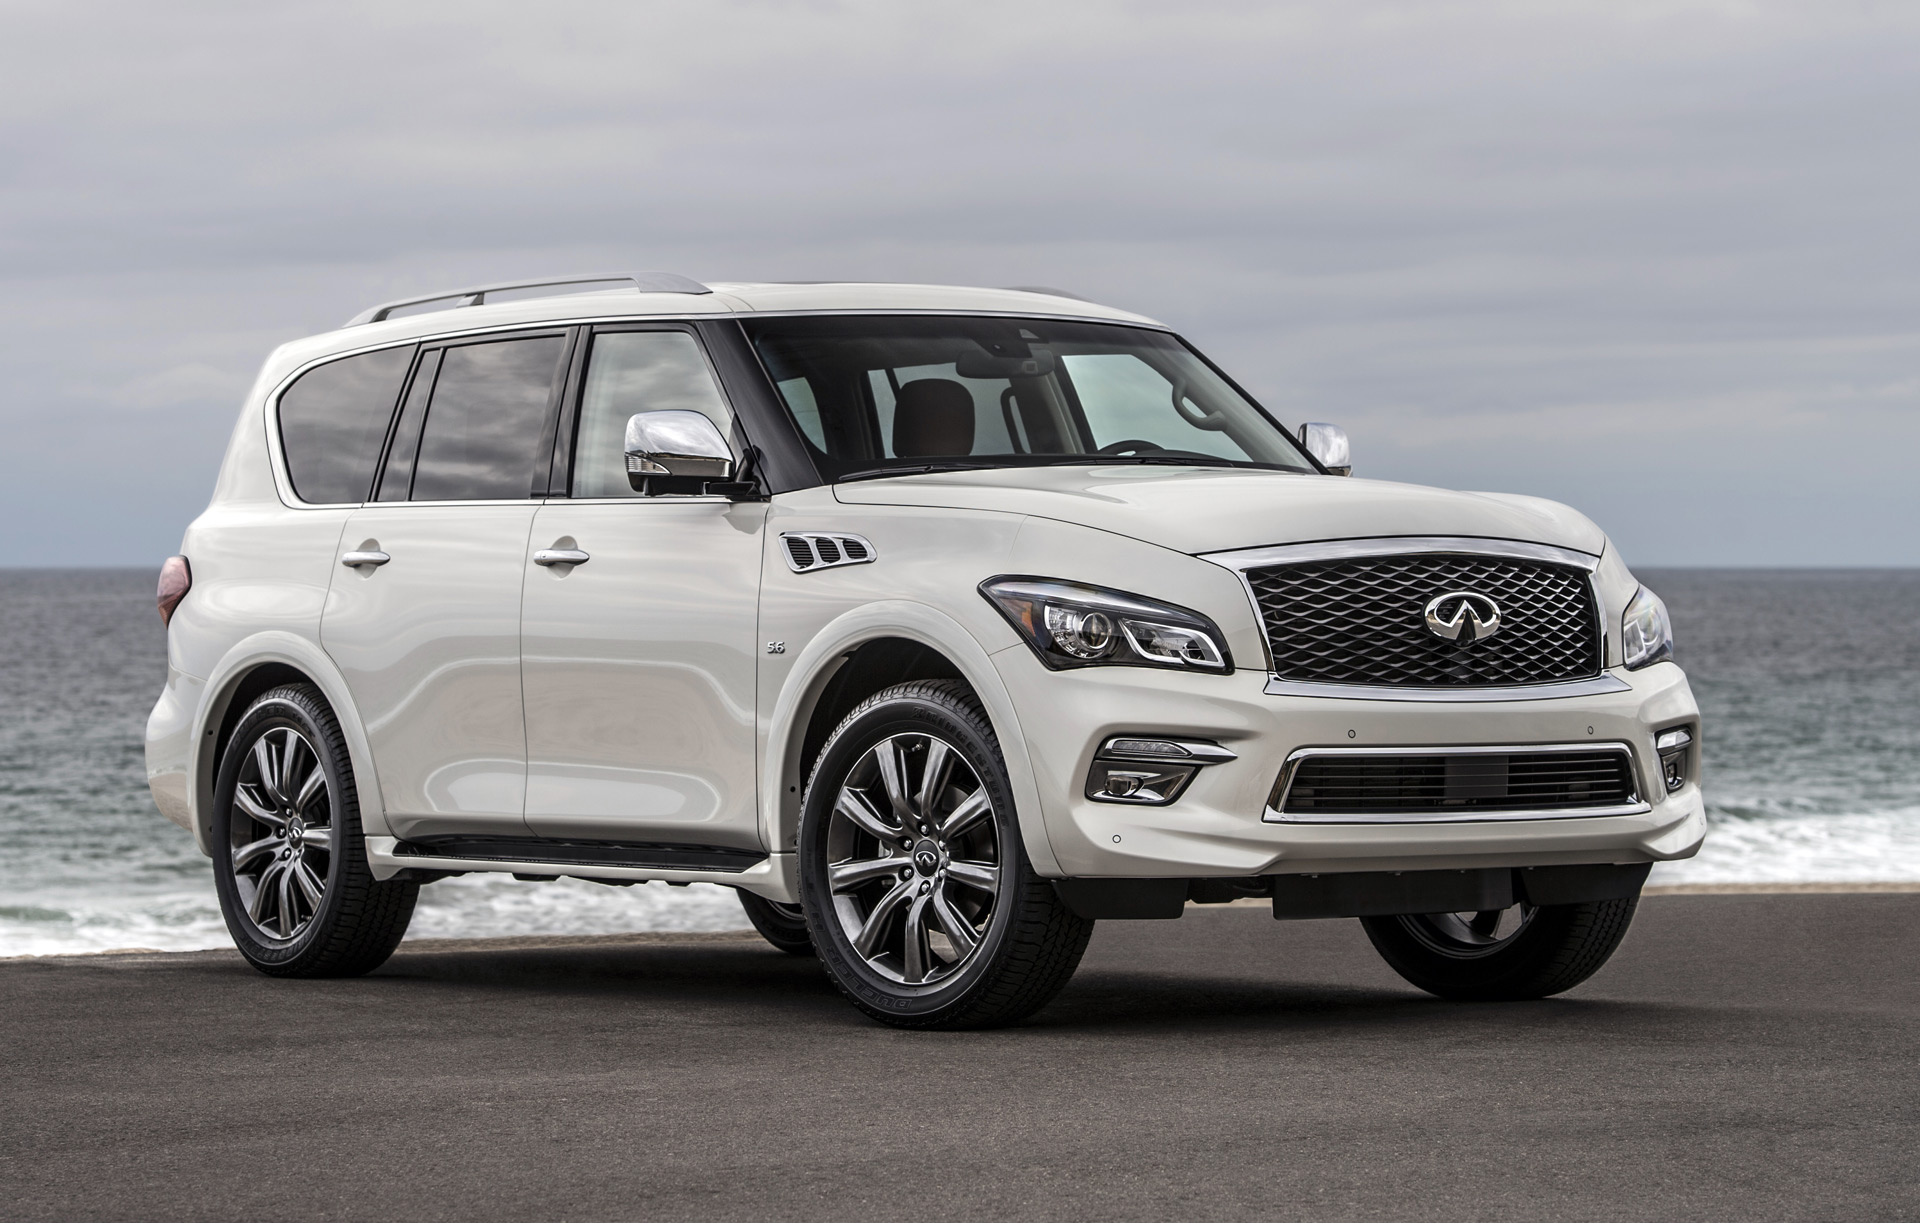 2017 INFINITI QX80 Safety Review and Crash Test Ratings ...